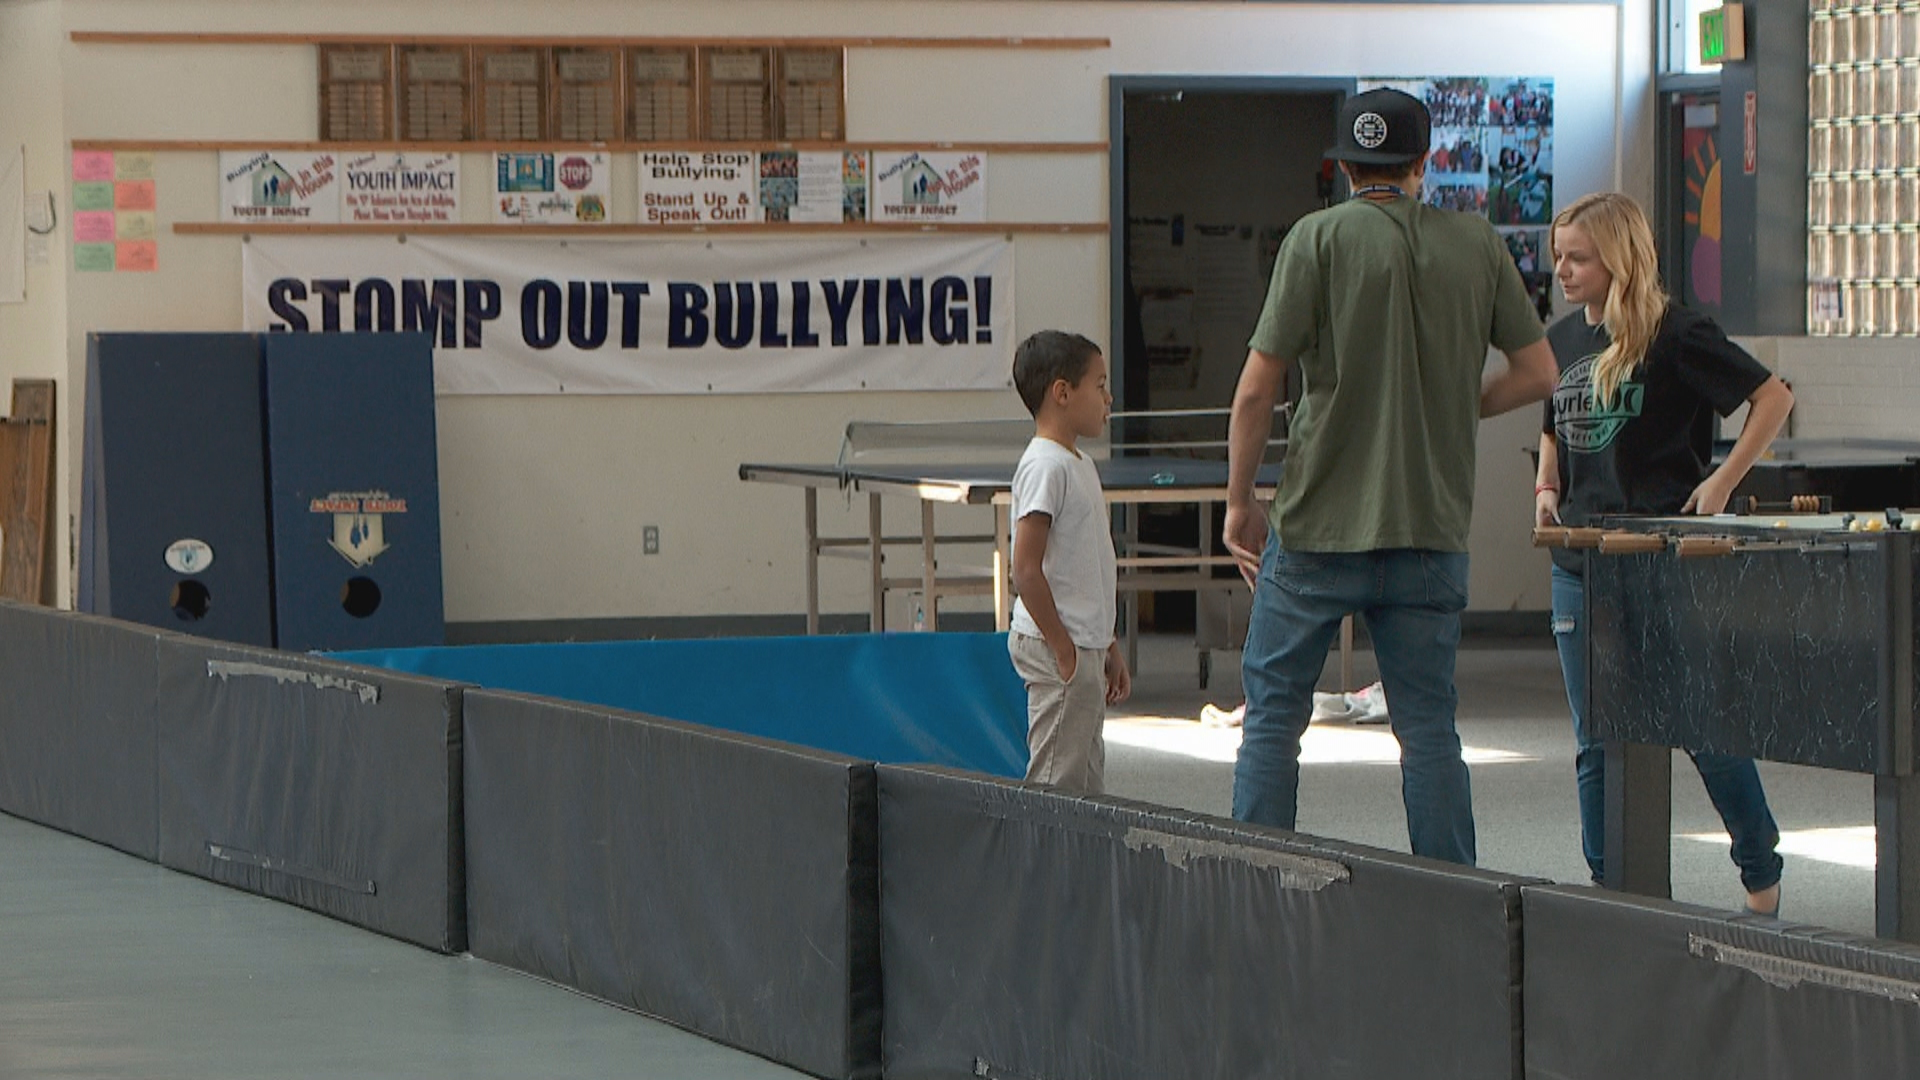 Pay it Forward: Youth Impact (Photo: KUTV)